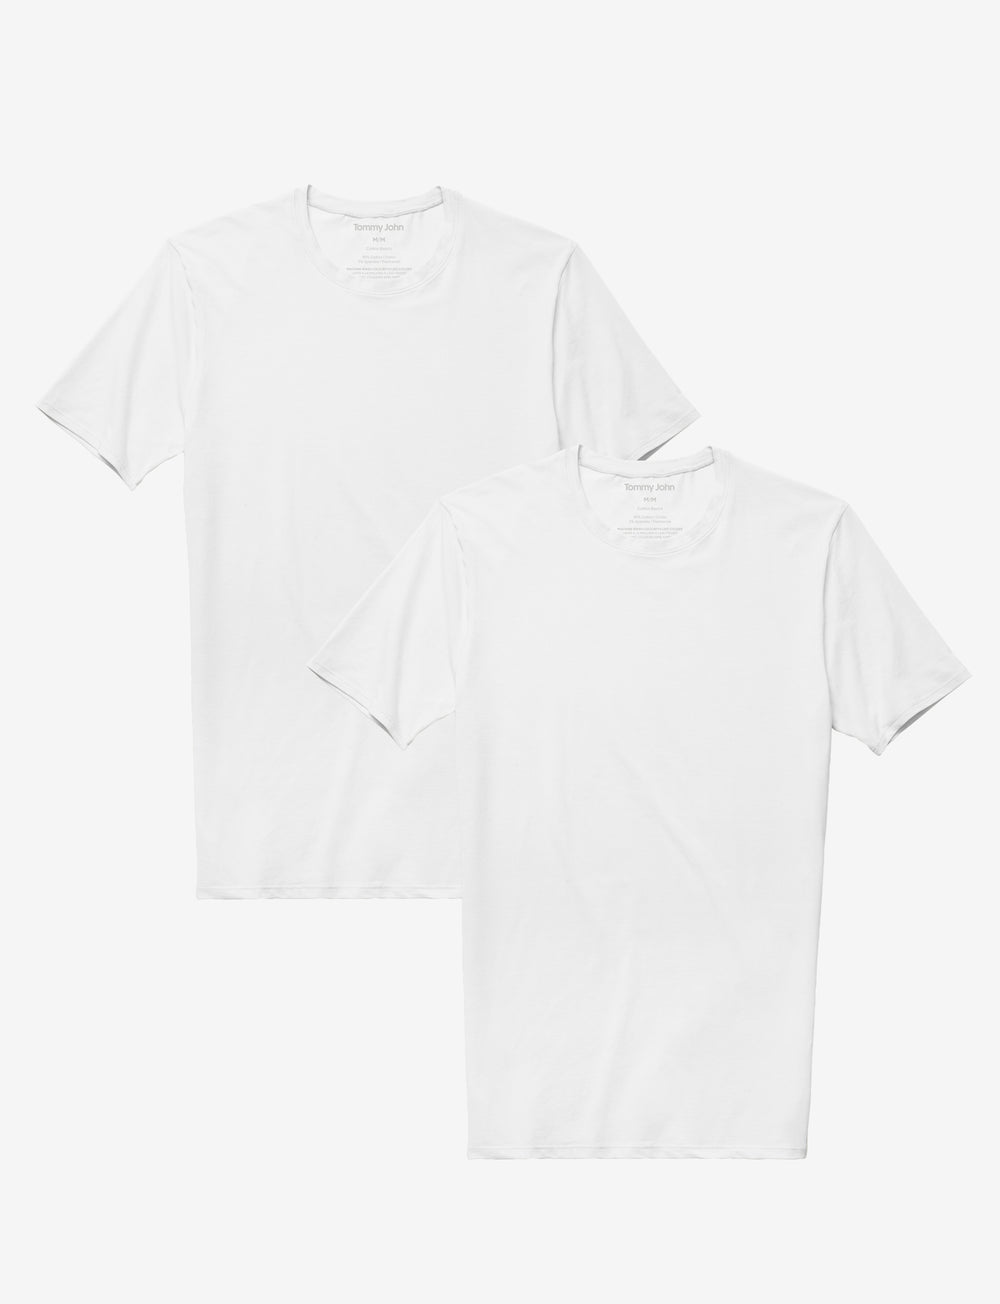 Cotton Basics Crew Neck Stay-Tucked Undershirt 2 Pack Details Image